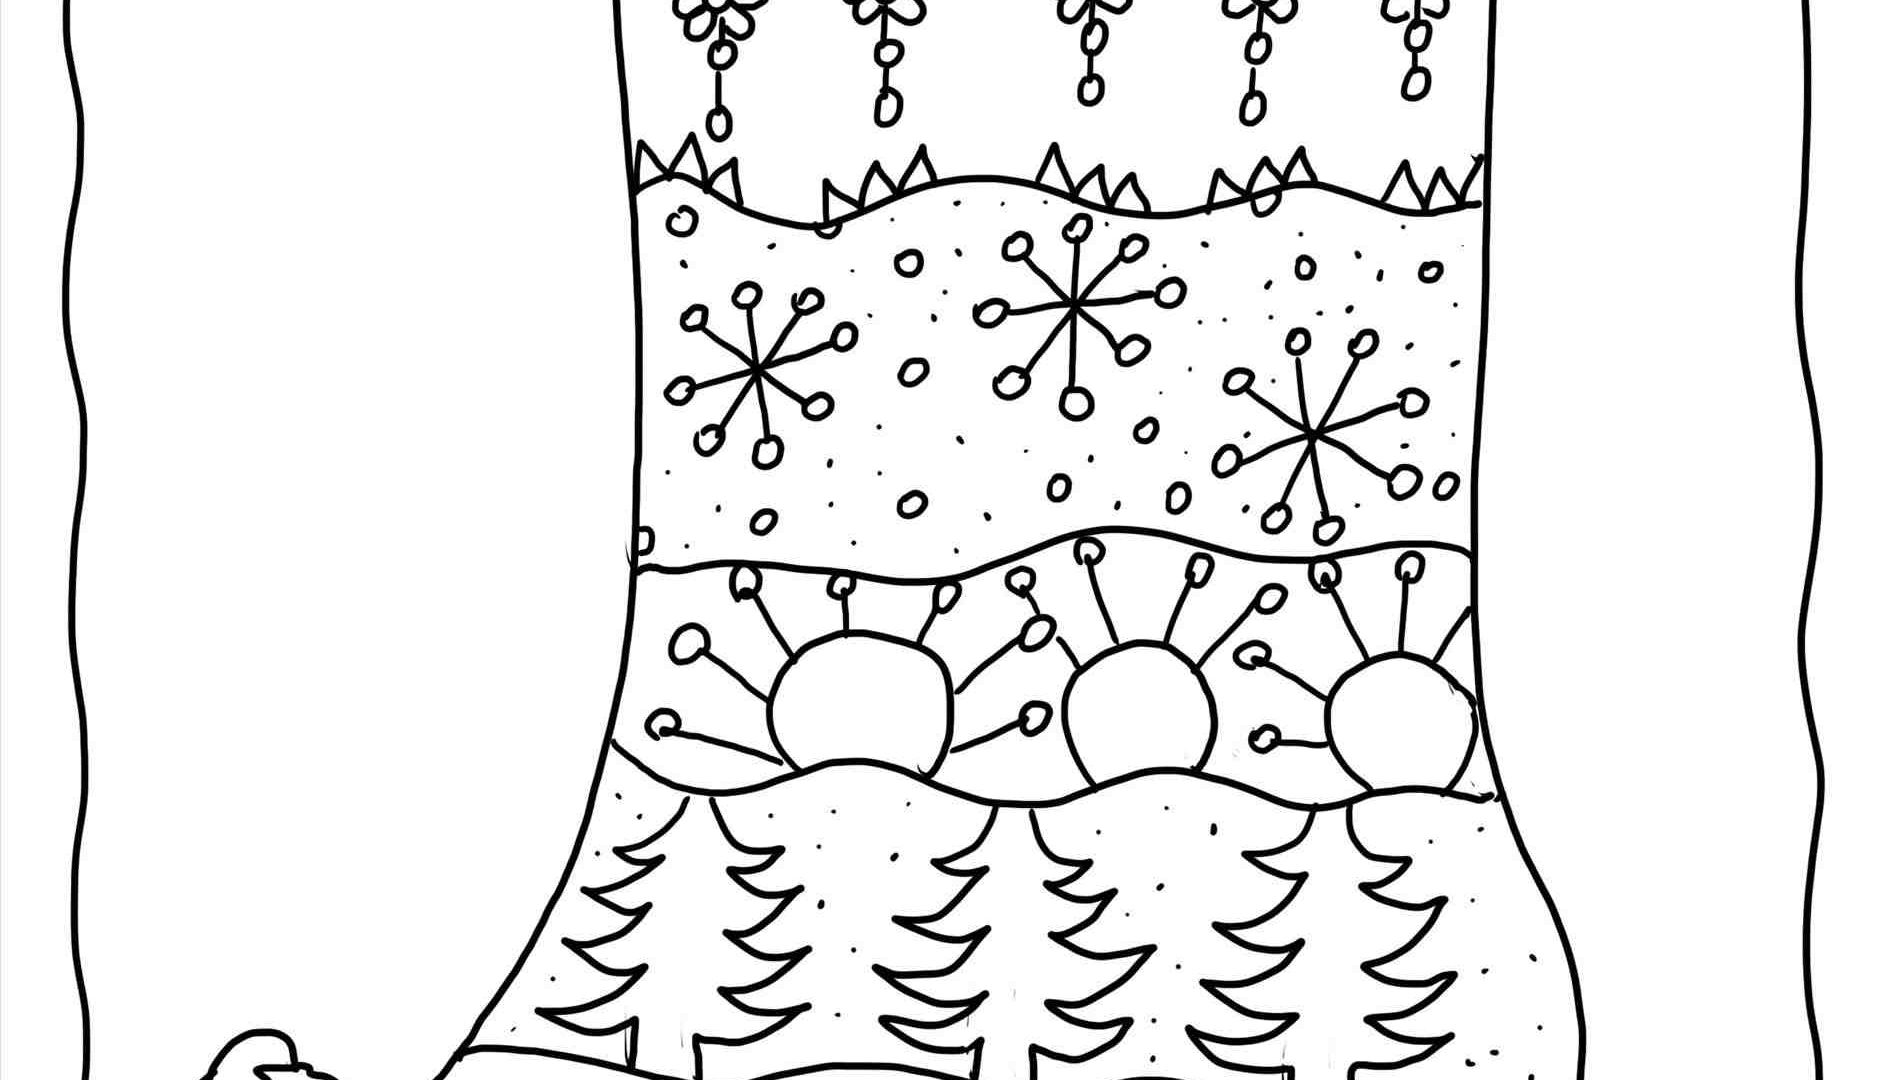 1899x1080 Christmas Stocking Coloring Pages Pattern Pictures Of Christmas